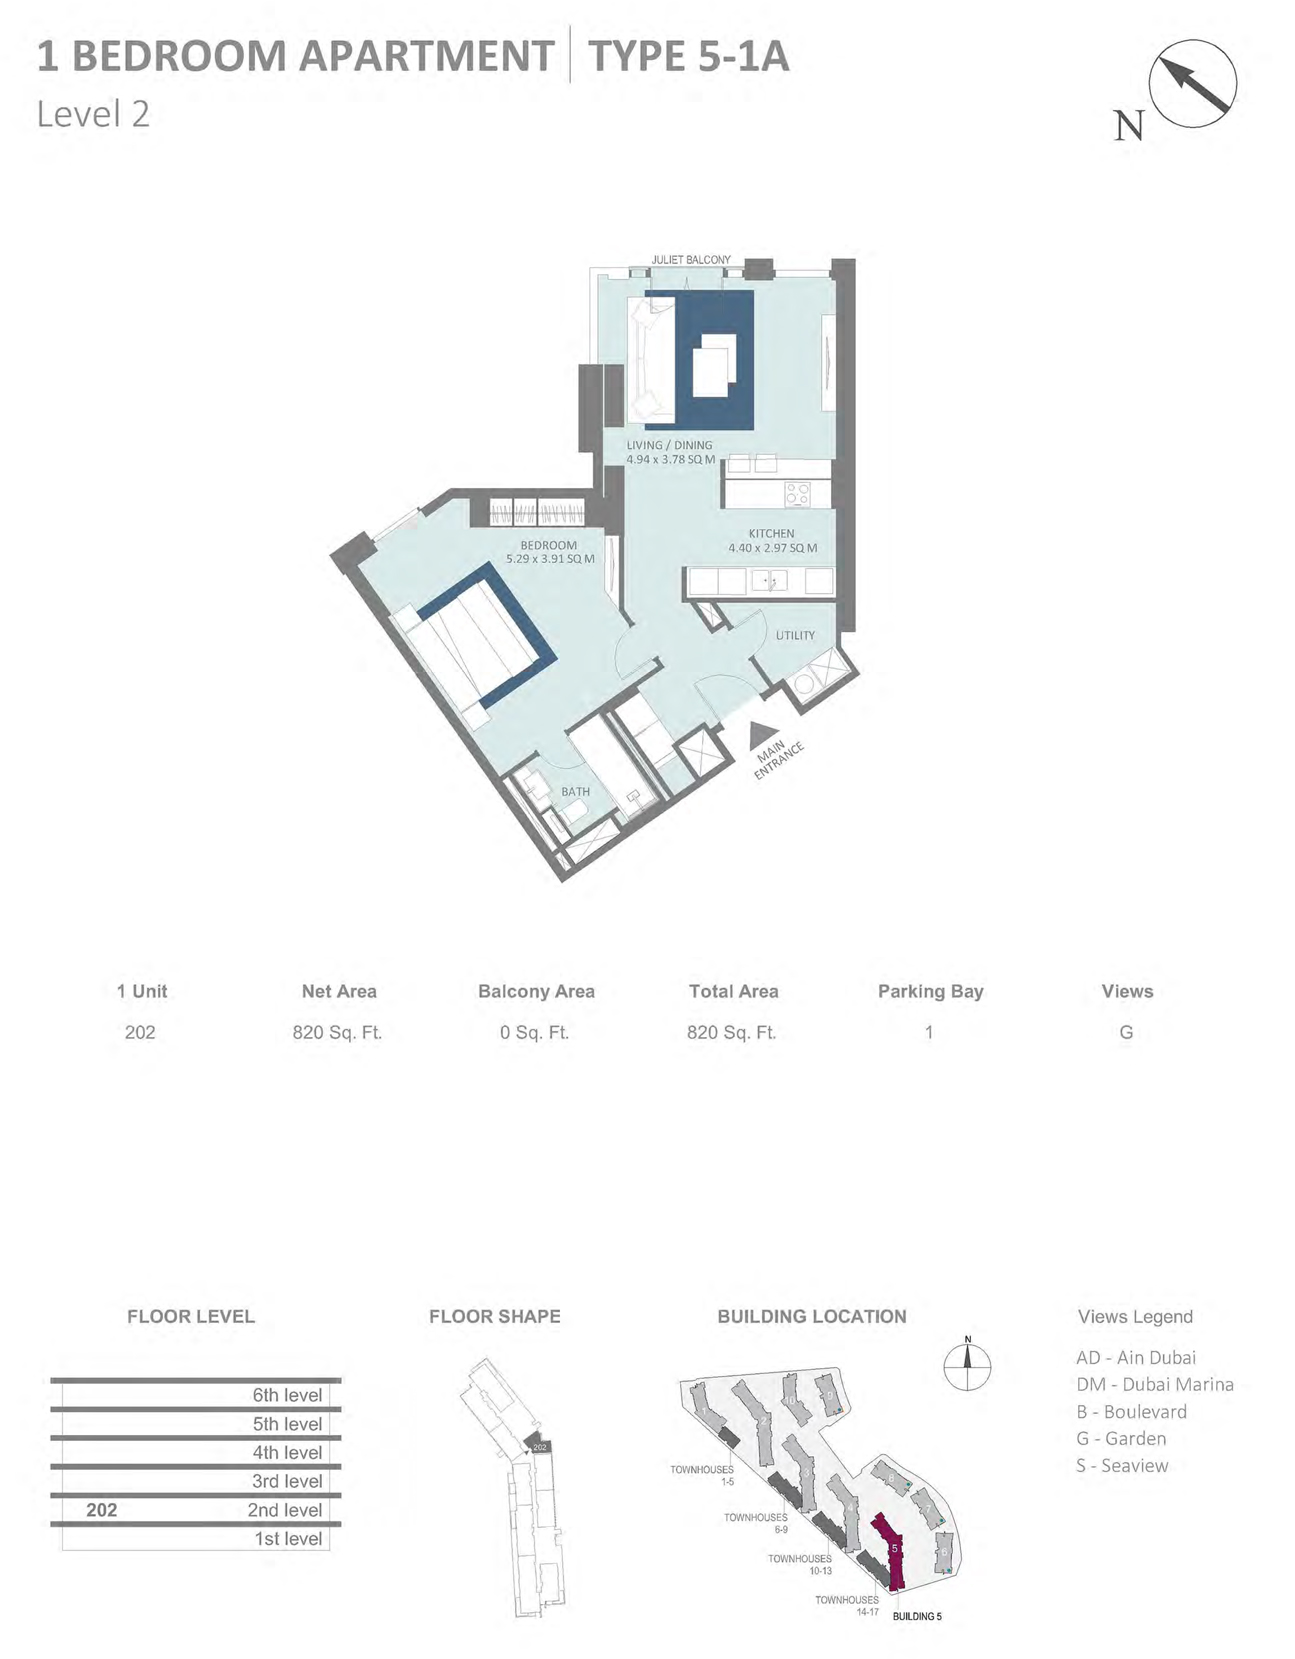 Building 5 - 1 Bedroom Type 5-1 Level 2 , Size 820    sq. ft.